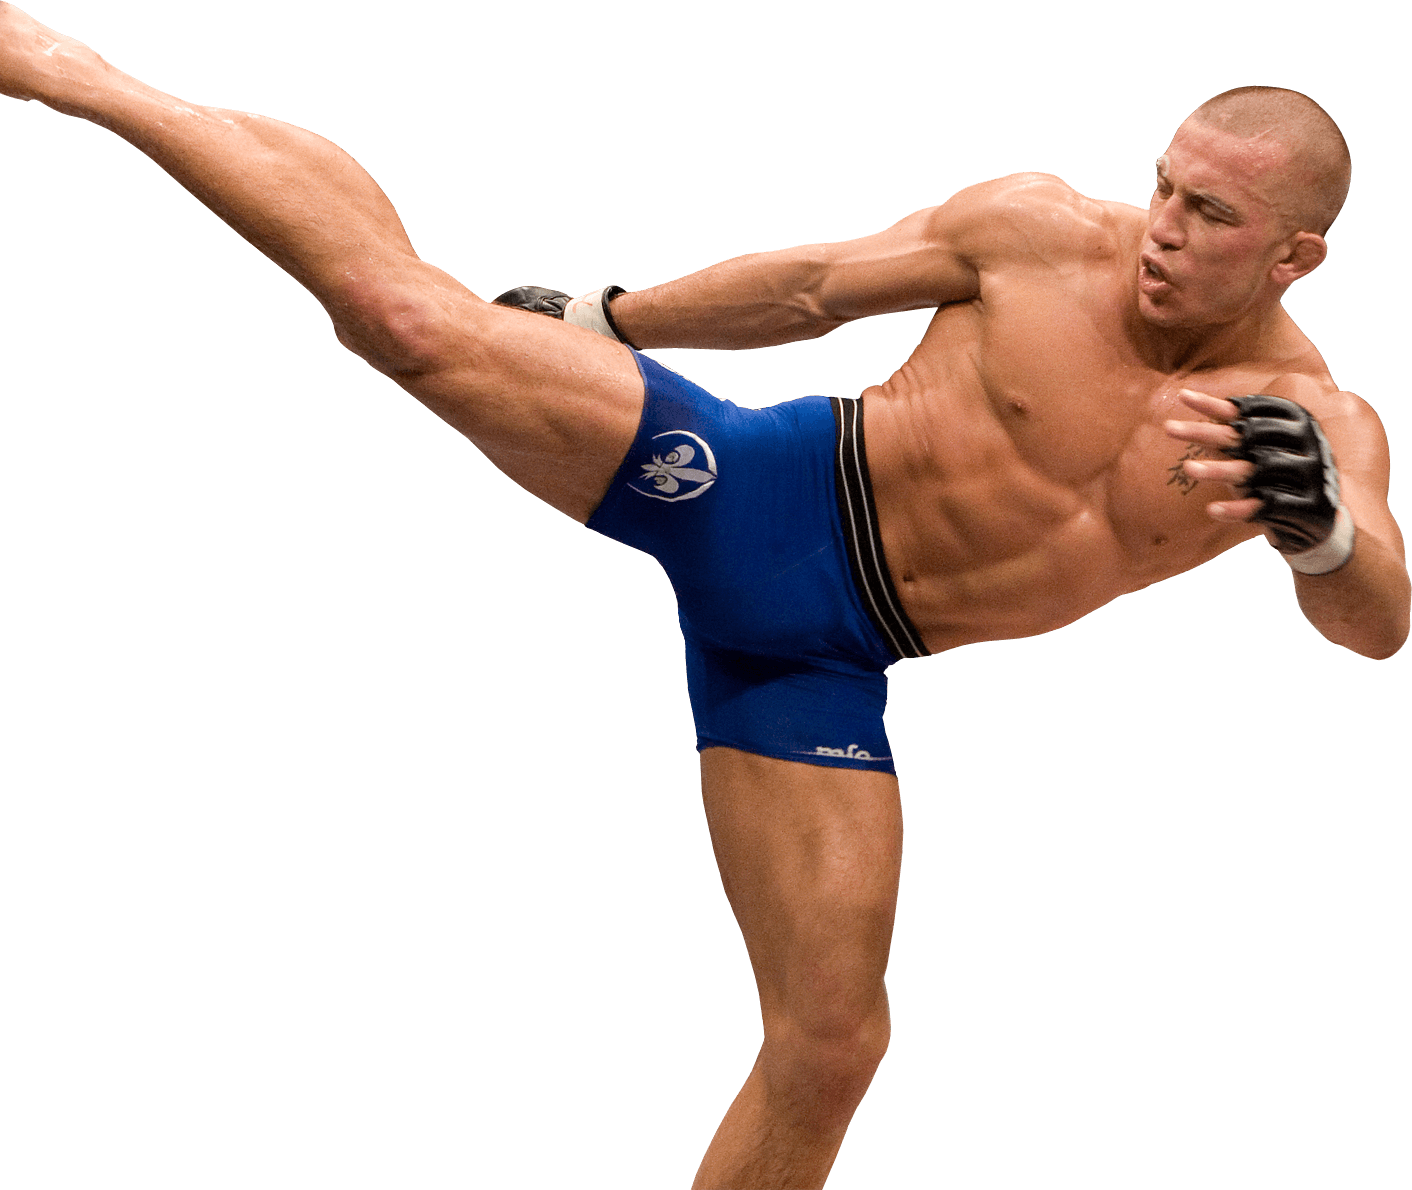 Georges St. Pierre Workout Program: Rushfit